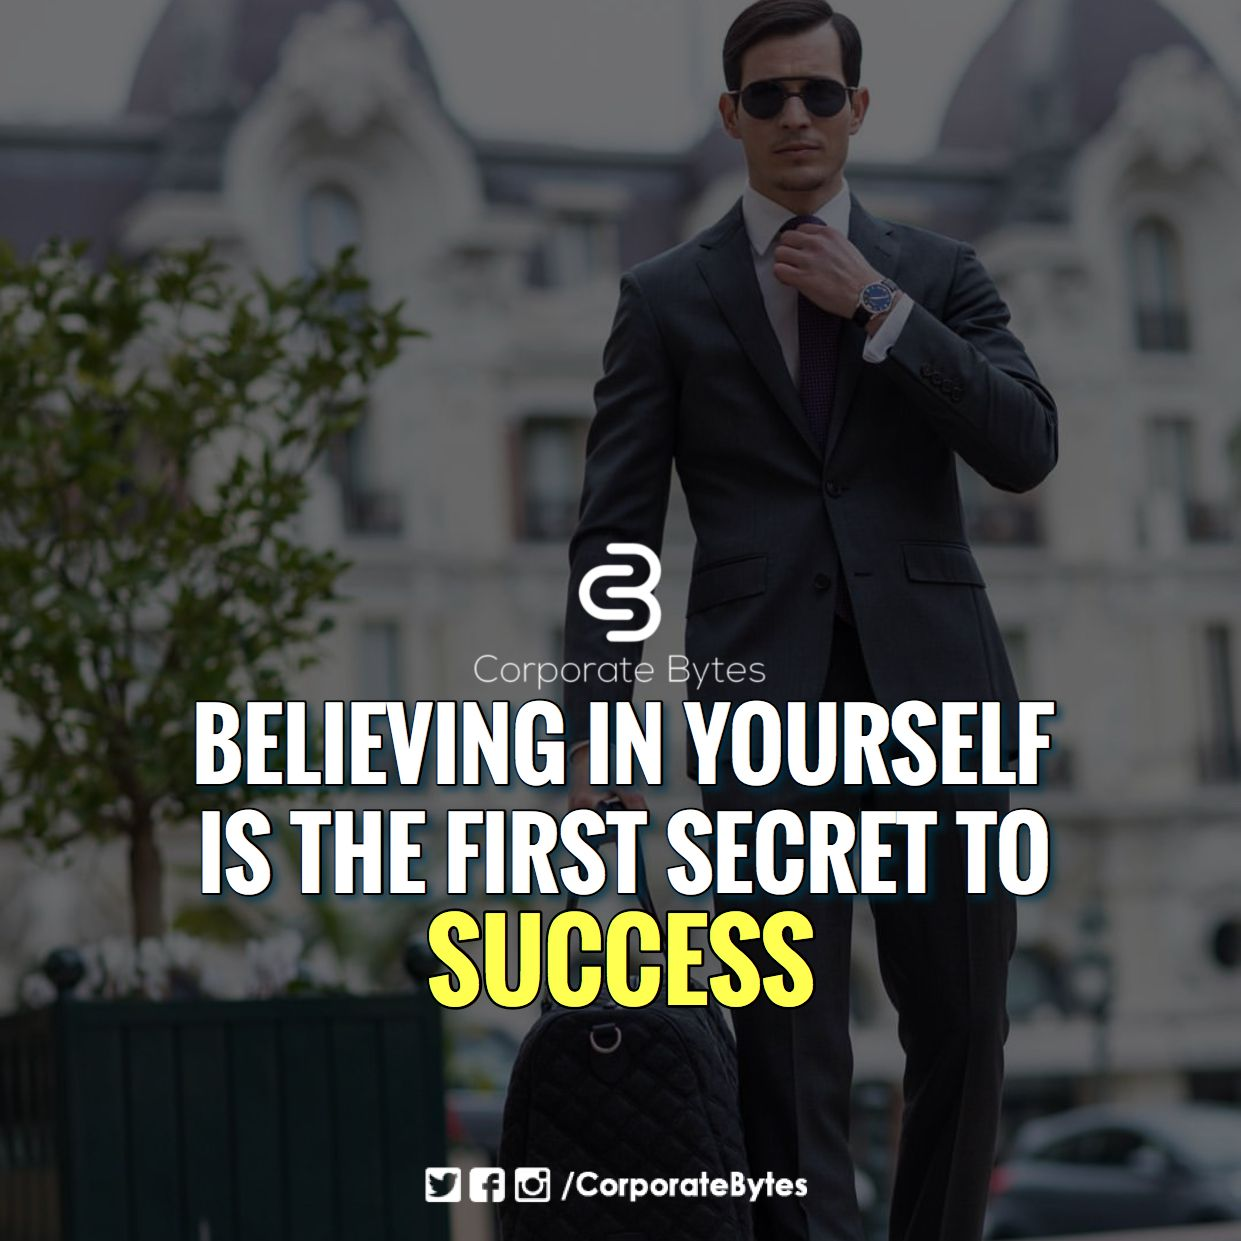 success in life is money According to the present society, i'd say, yes money does means success no  matter  money is just a resource you need to fulfill your requirements of daily life.